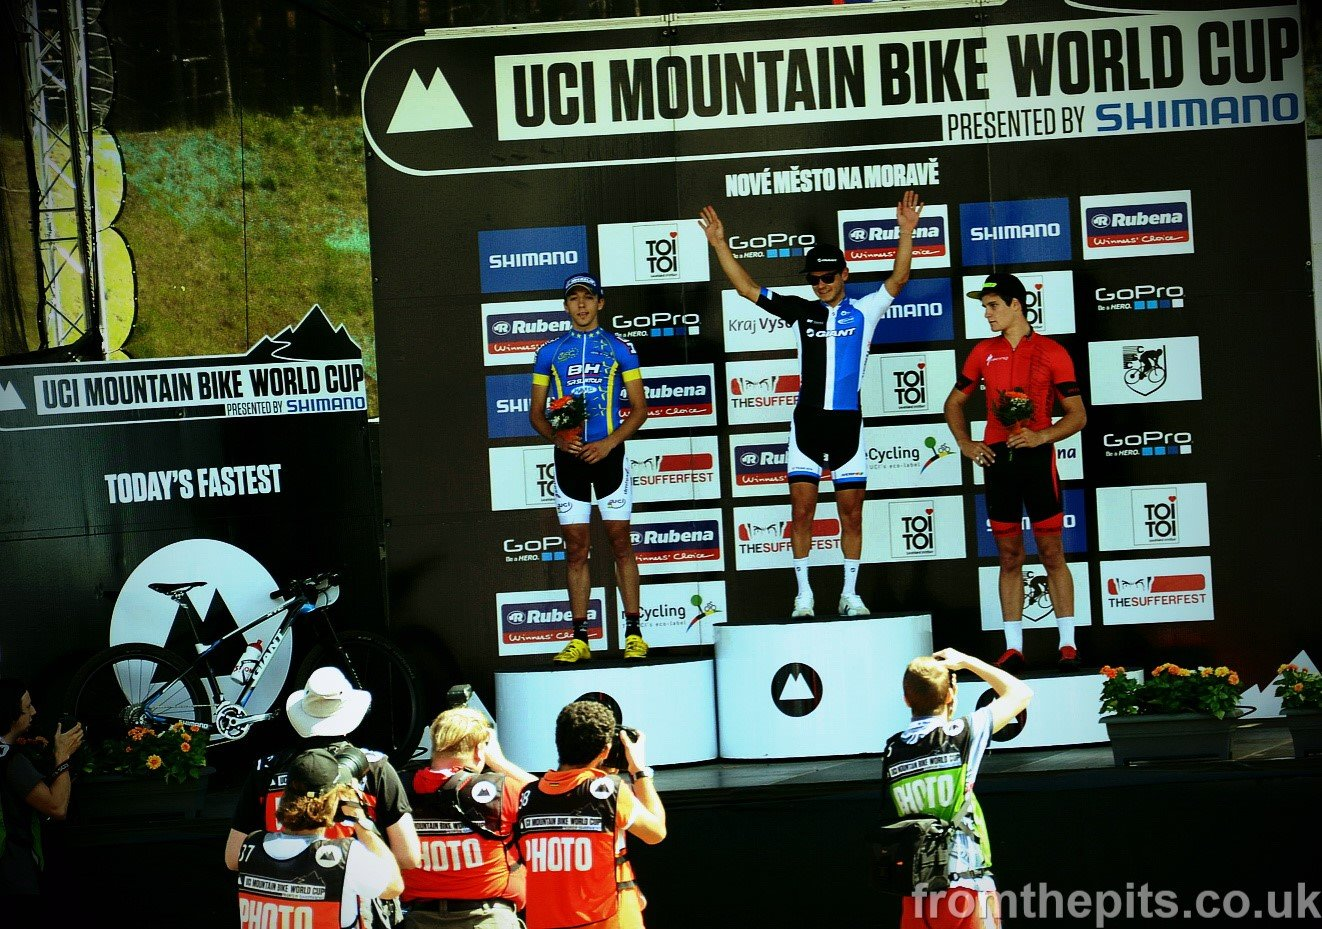 In front of the media, and keeping very good company, on the U23 World Cup XCO podium in Czech Republic